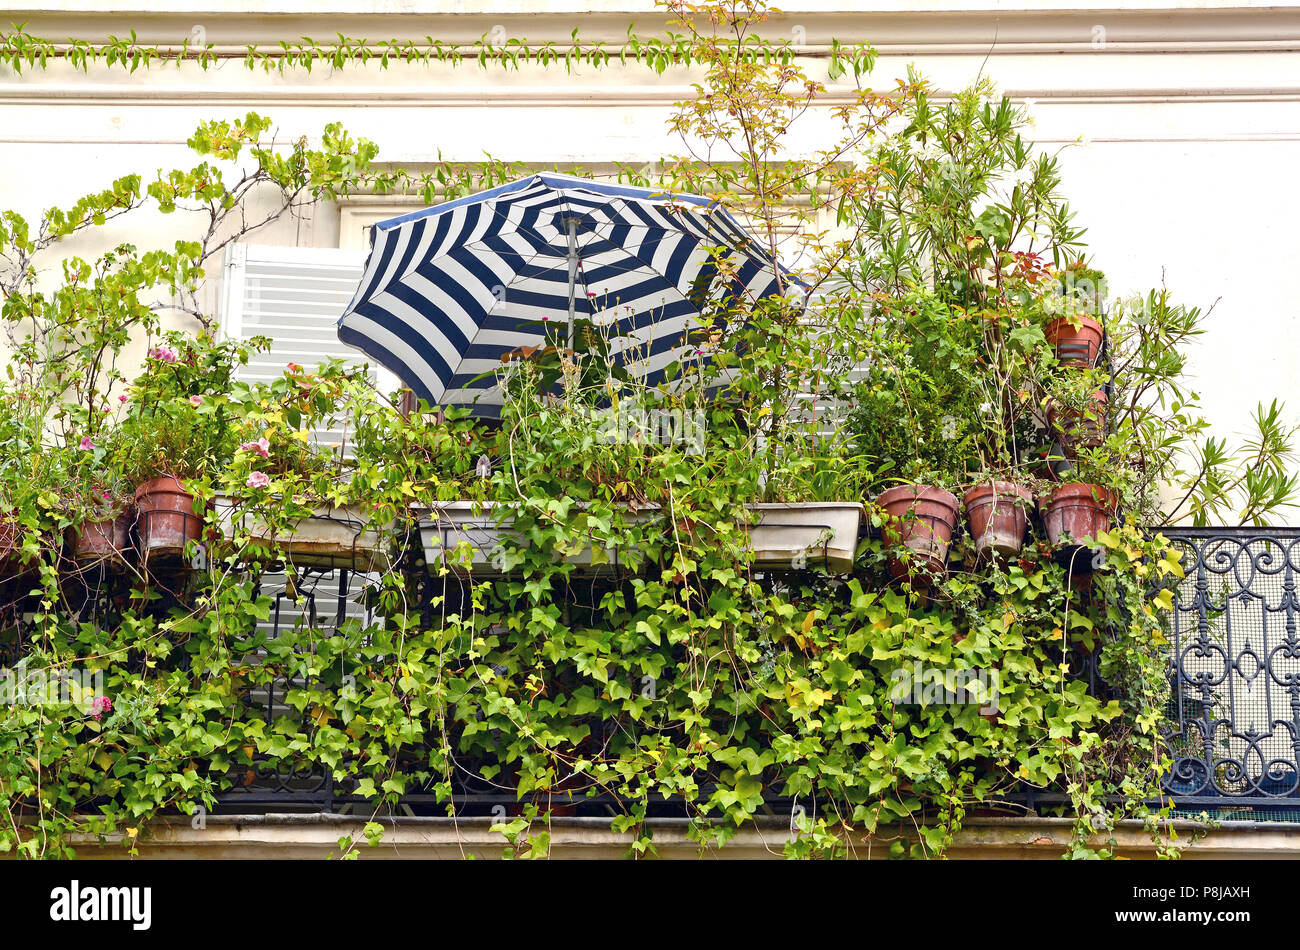 A blue and white striped parasol on a balcony smothered in plants, seen in Paris (France) well illustrated the concept of 'staycation'. - Stock Image